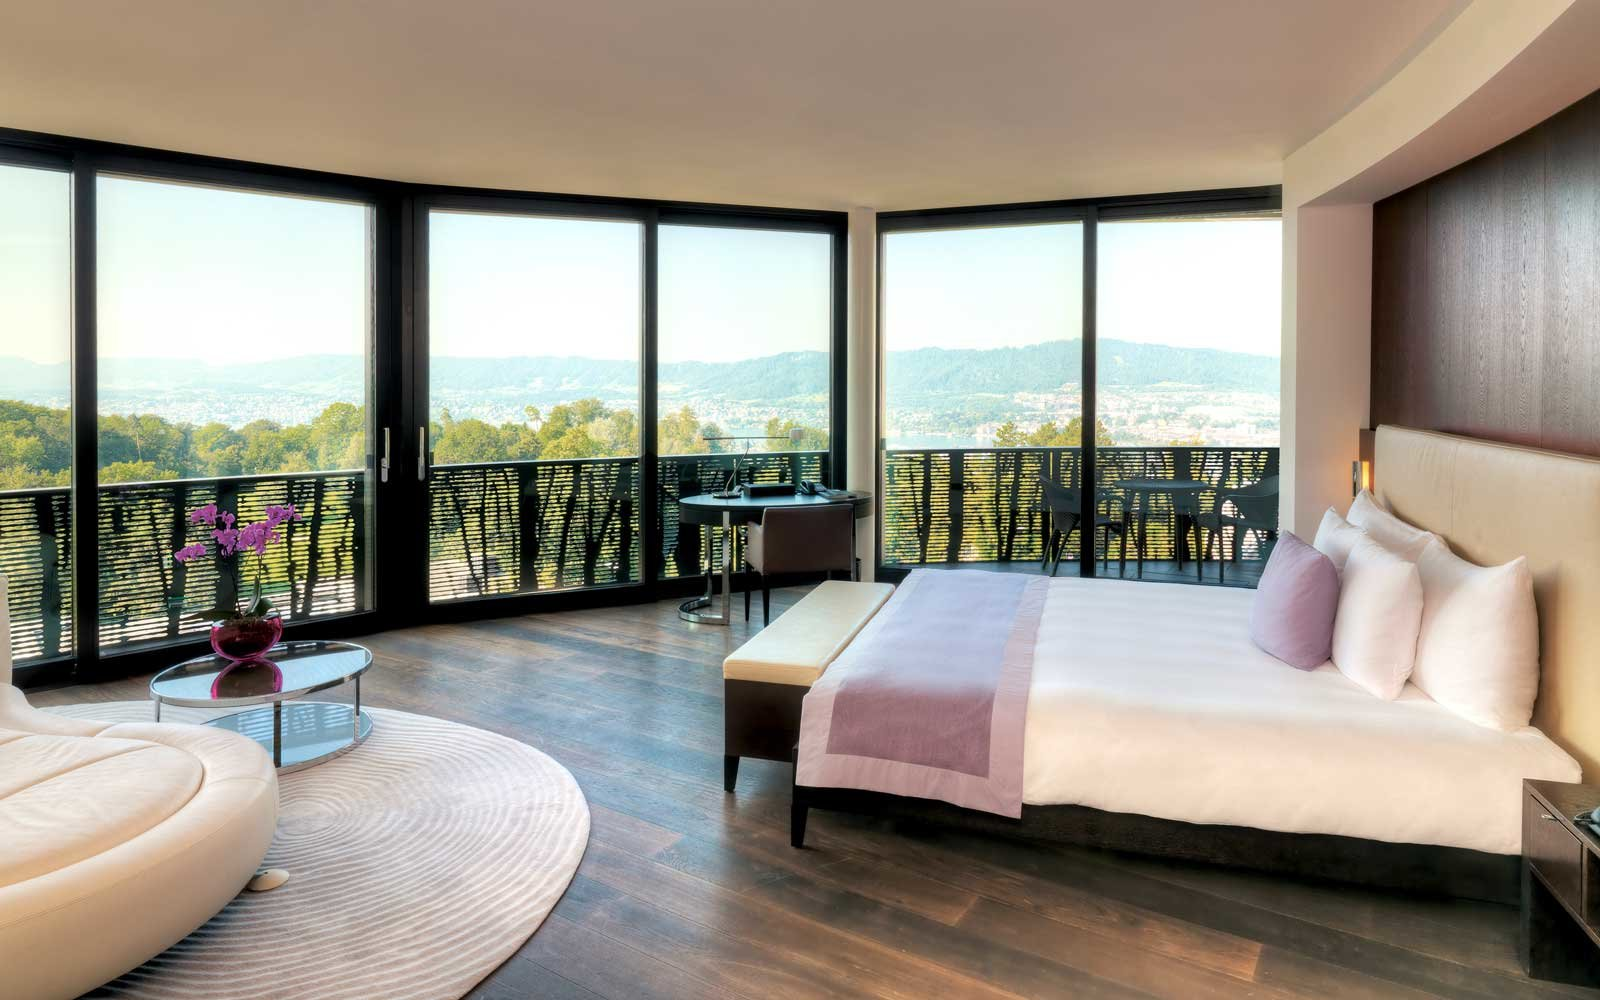 View from a room at the Dolder Grand hotel in Zurich, Switzerland